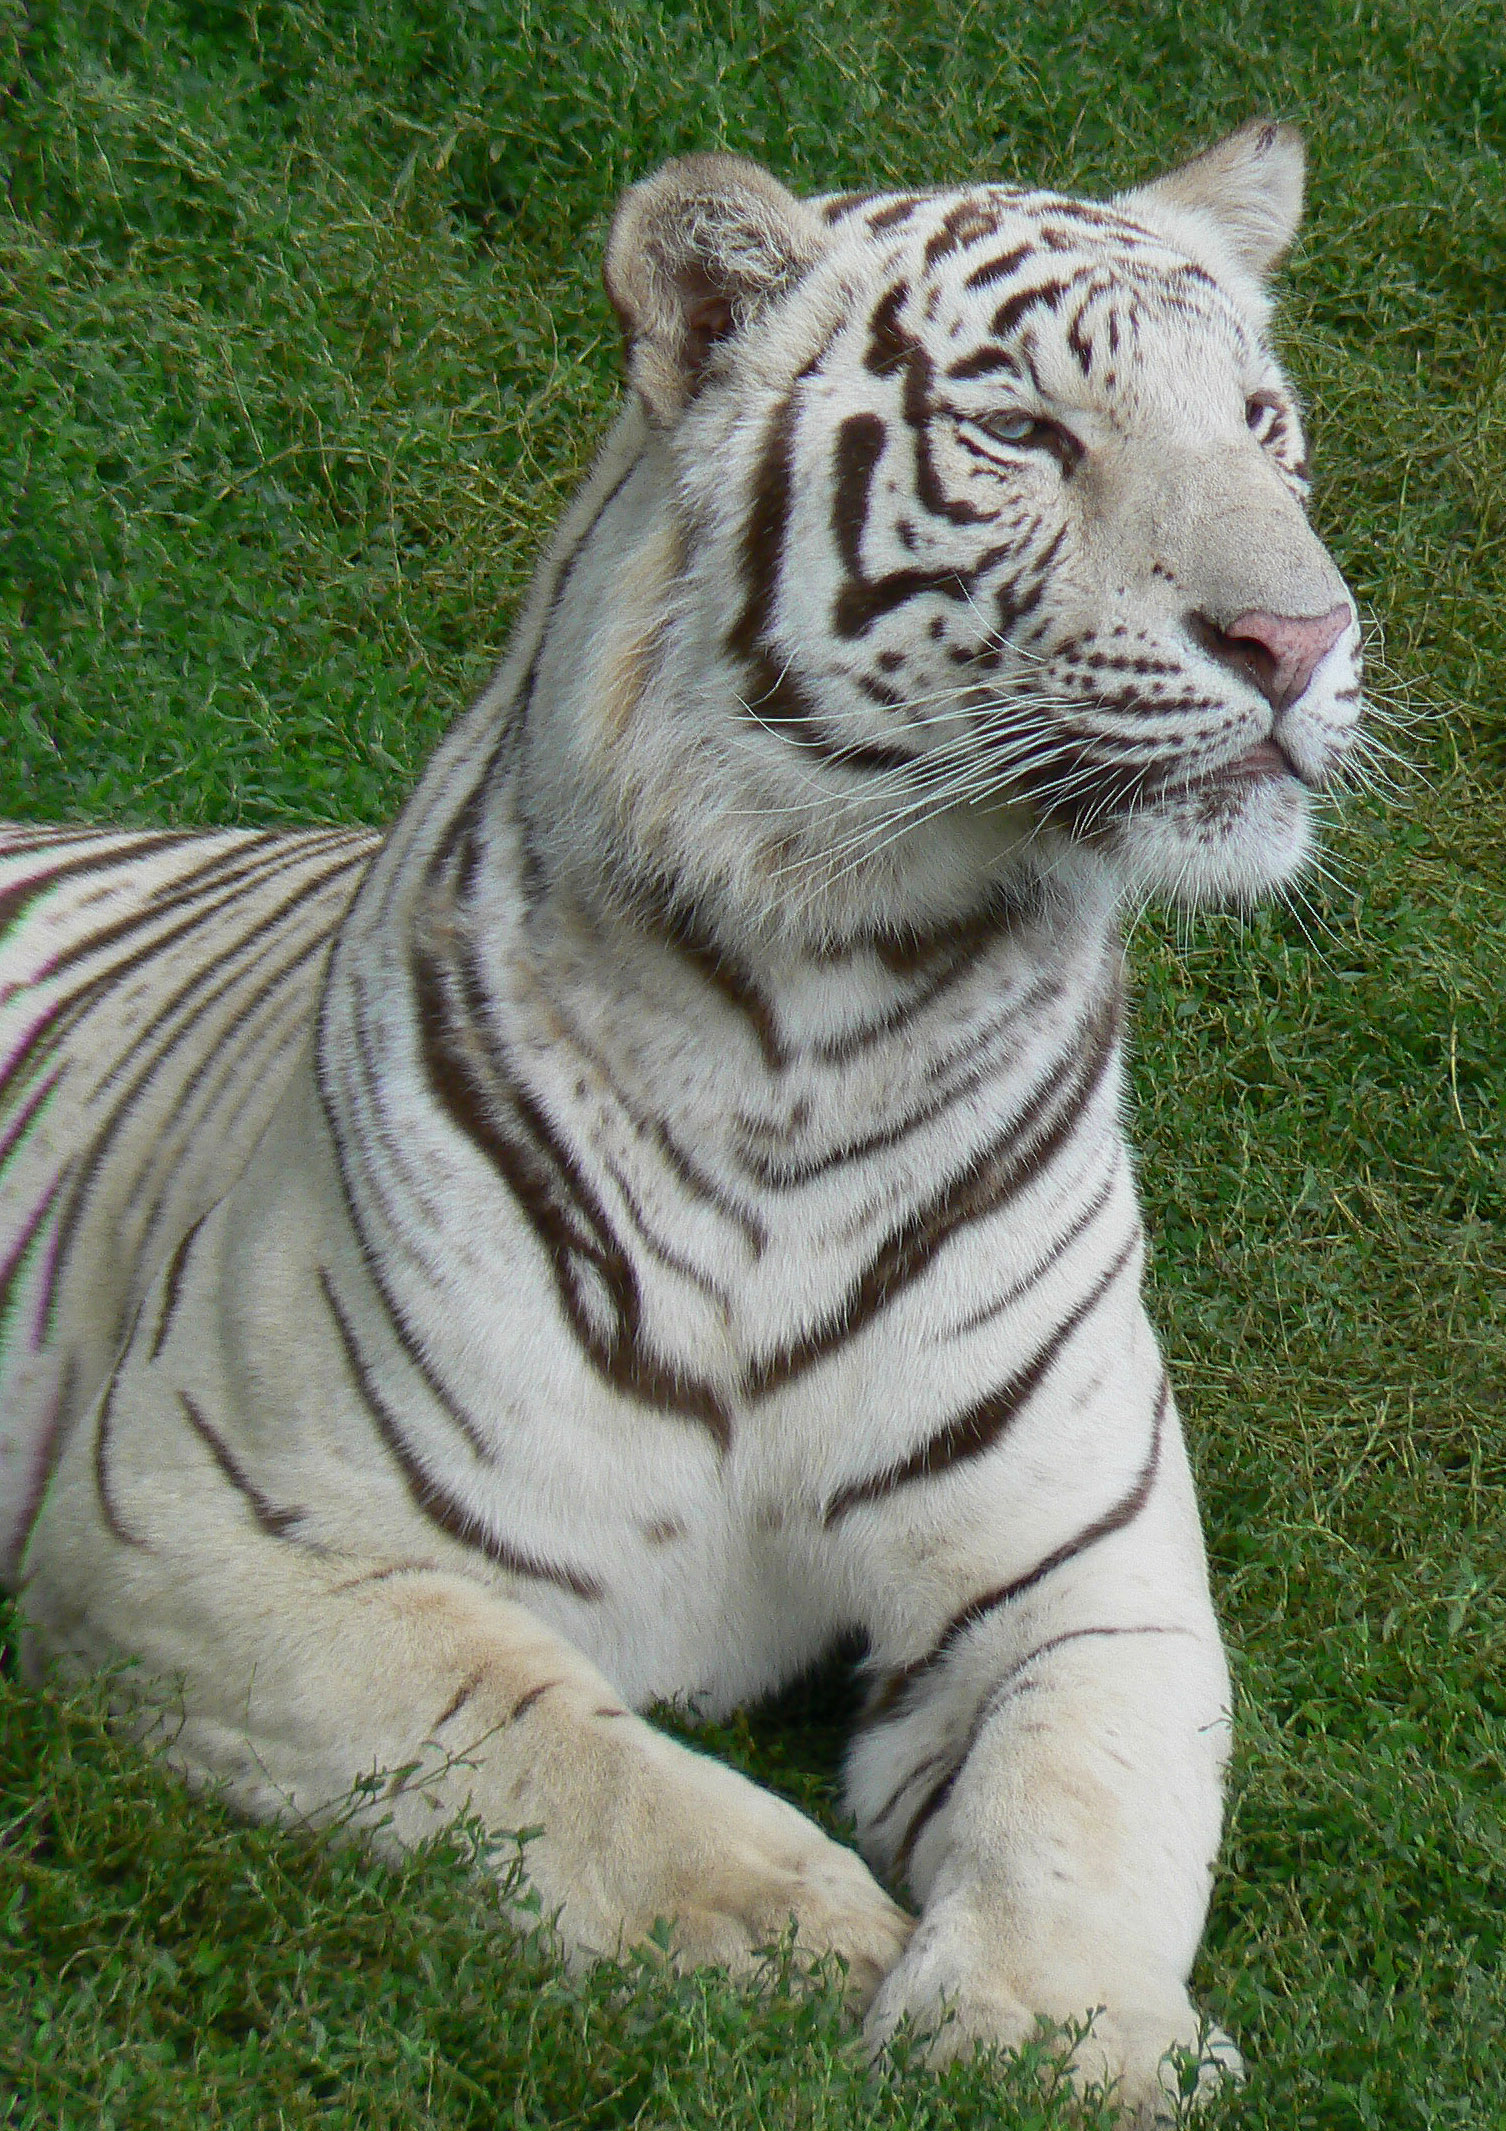 hot pics of animal tiger photos